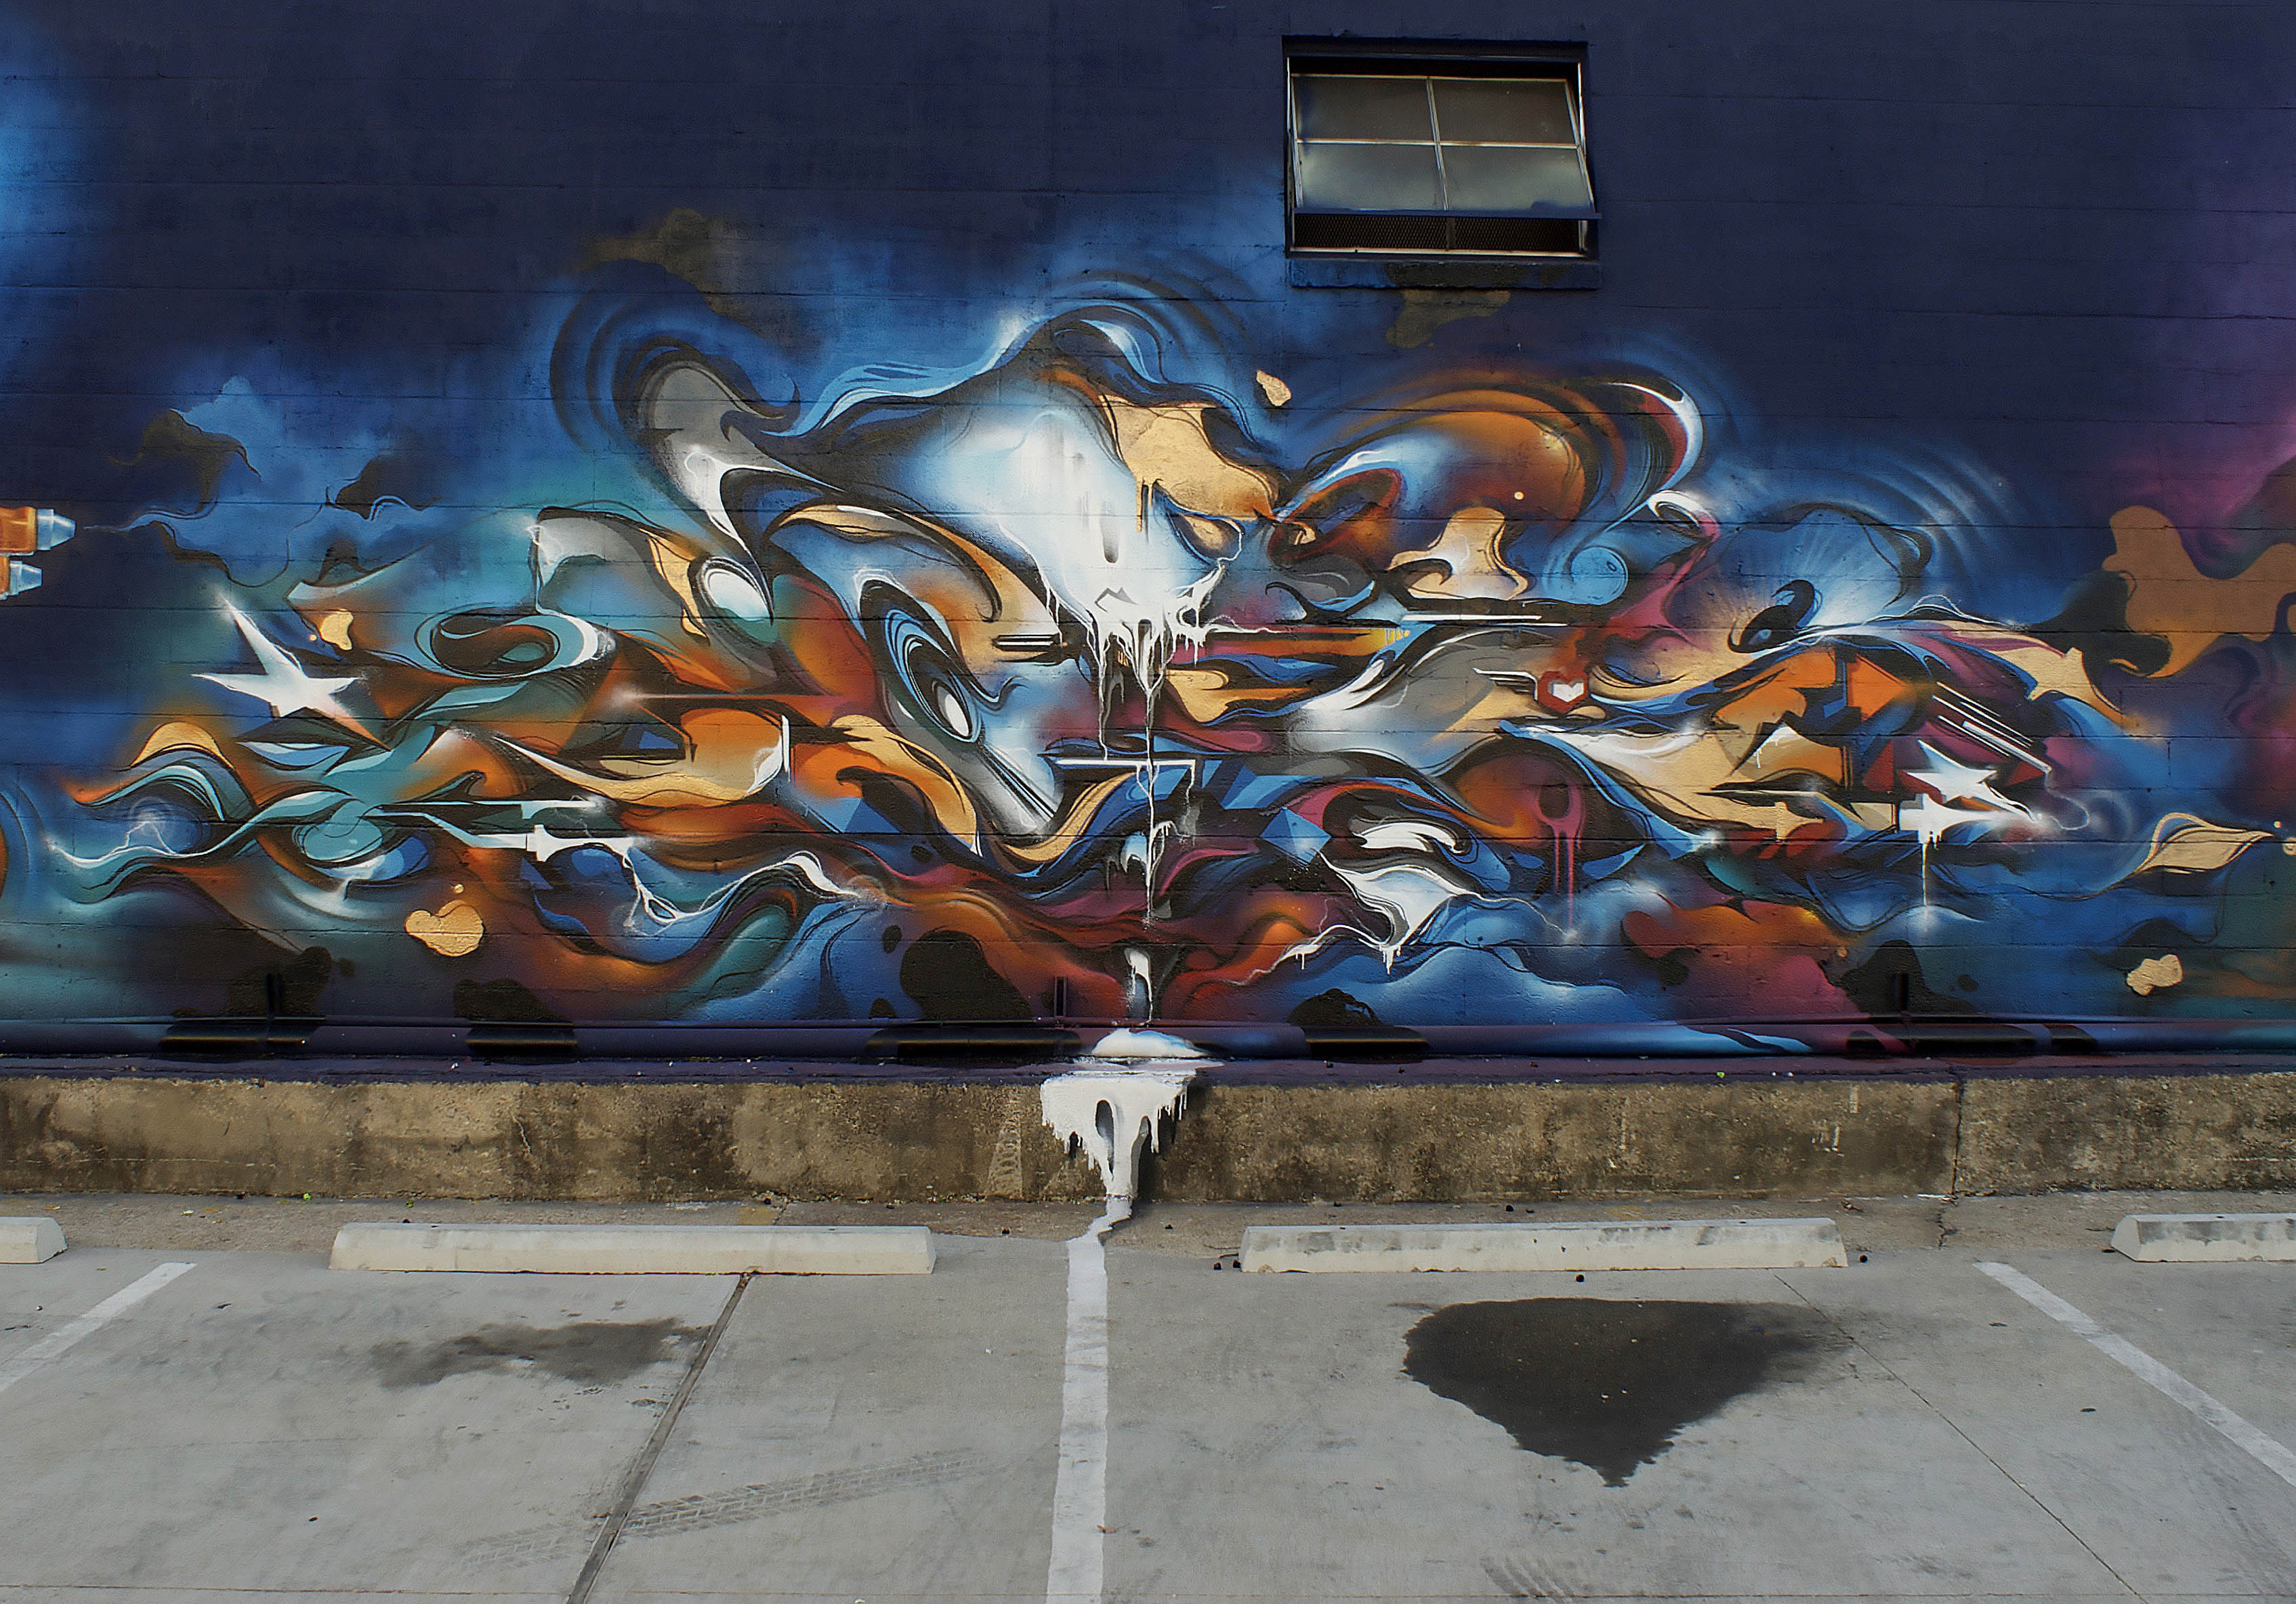 A work by Does - Baton rouge usa mural